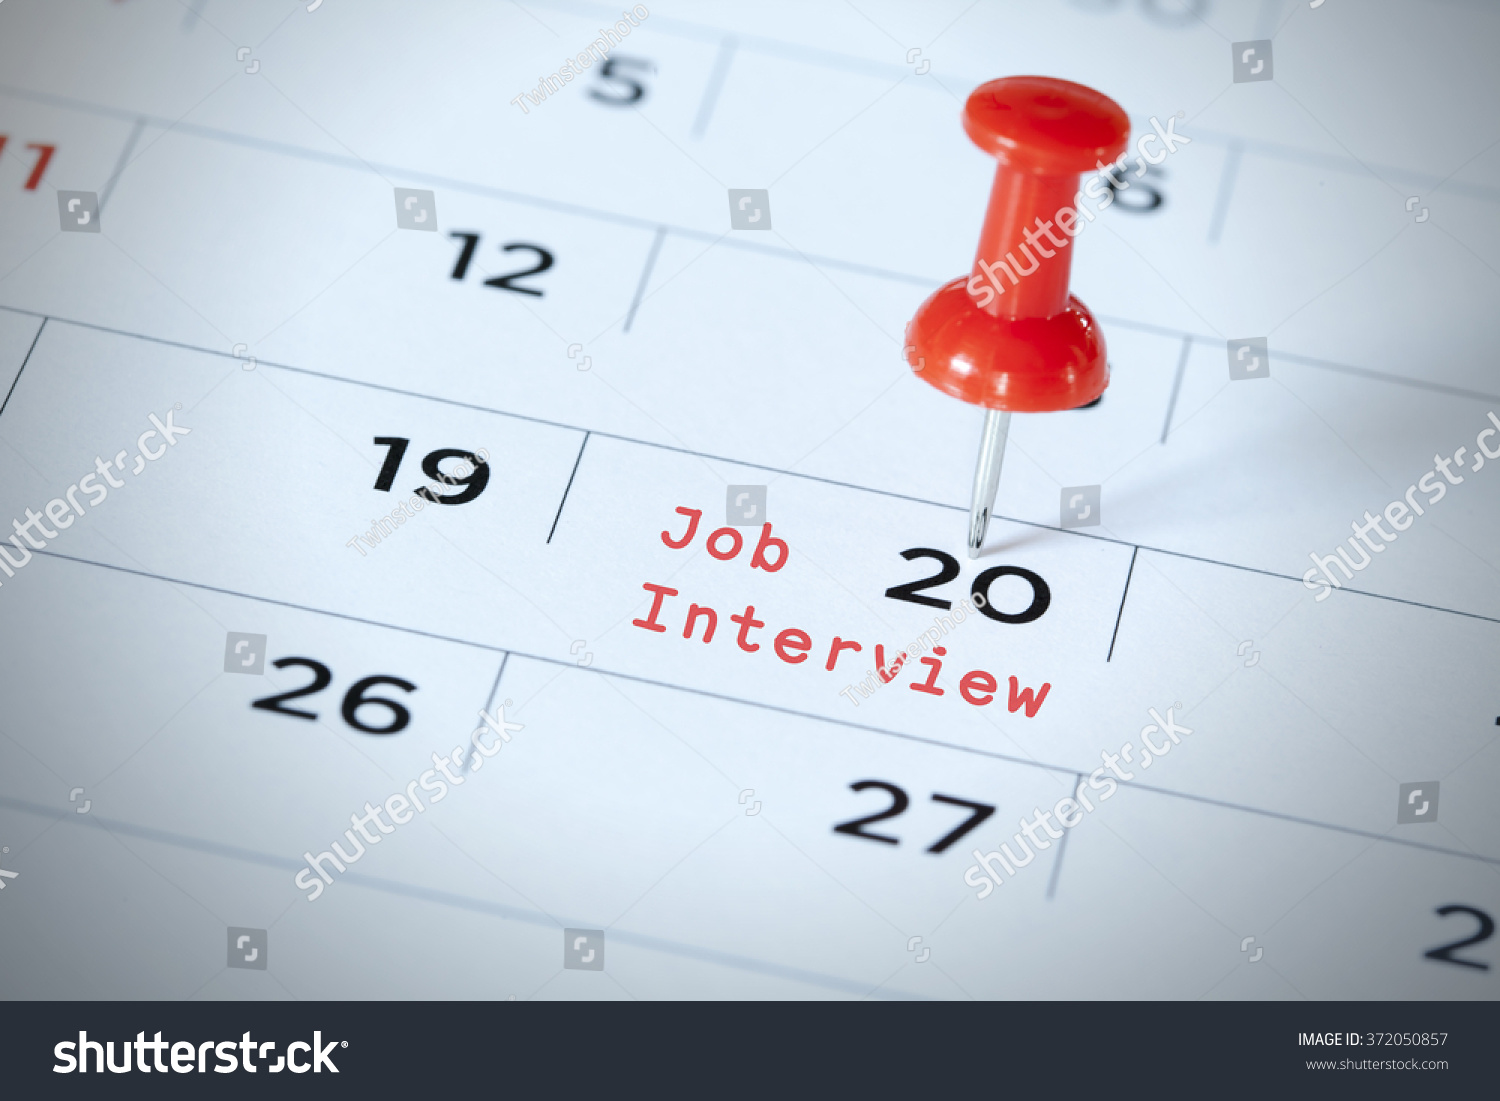 Calendar Photography Jobs : Job interview being pinned on calendar stock photo